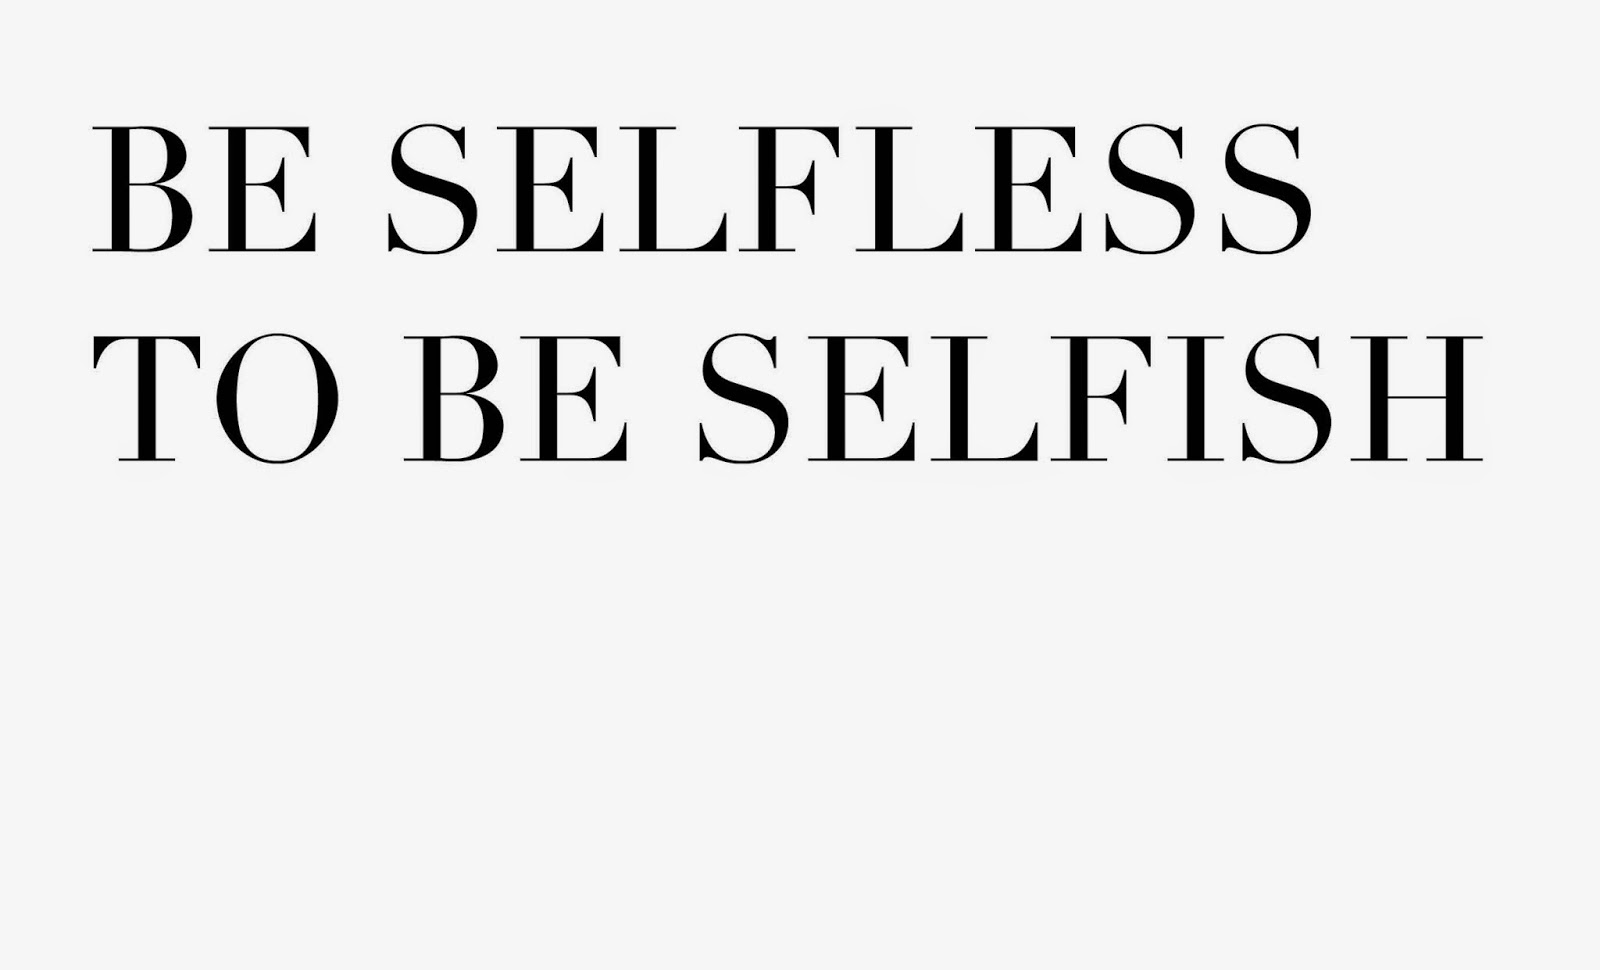 Be Selfless To Be Selfish